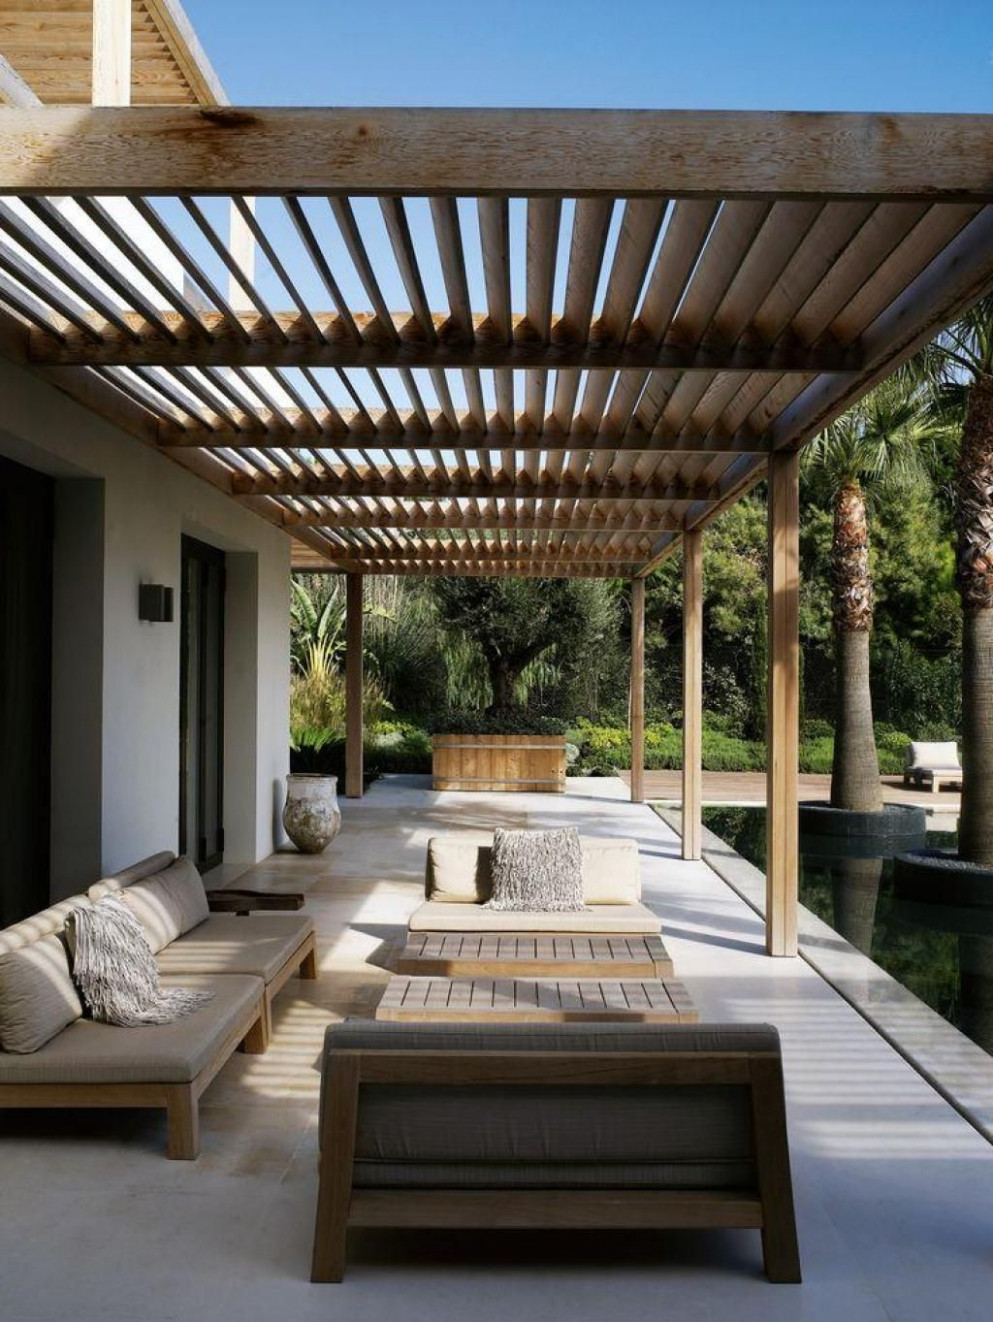 Pin By Www.tapja.com On Outdoor Design | Outdoor Pergola ..